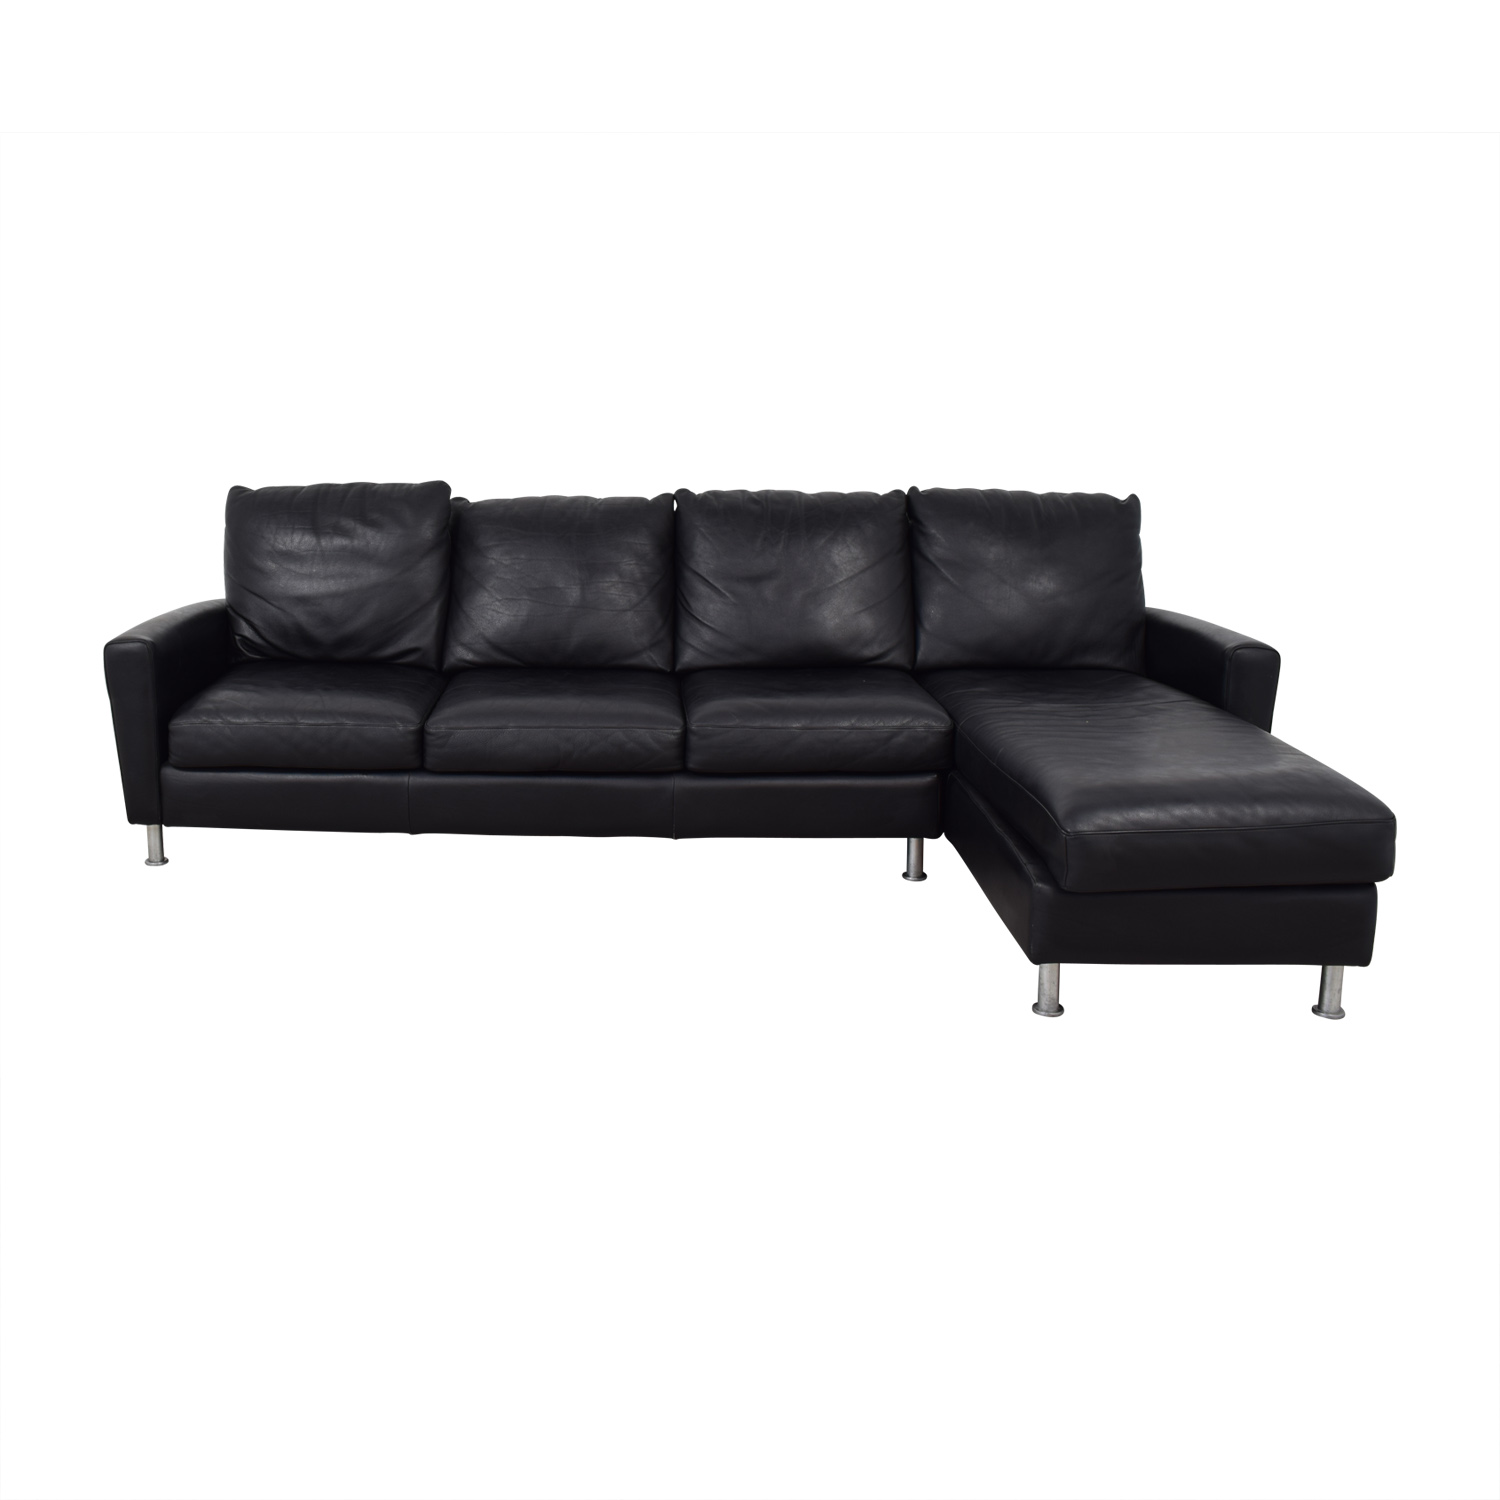 American Leather Company American Leather Company Sectional With Chaise Sectionals